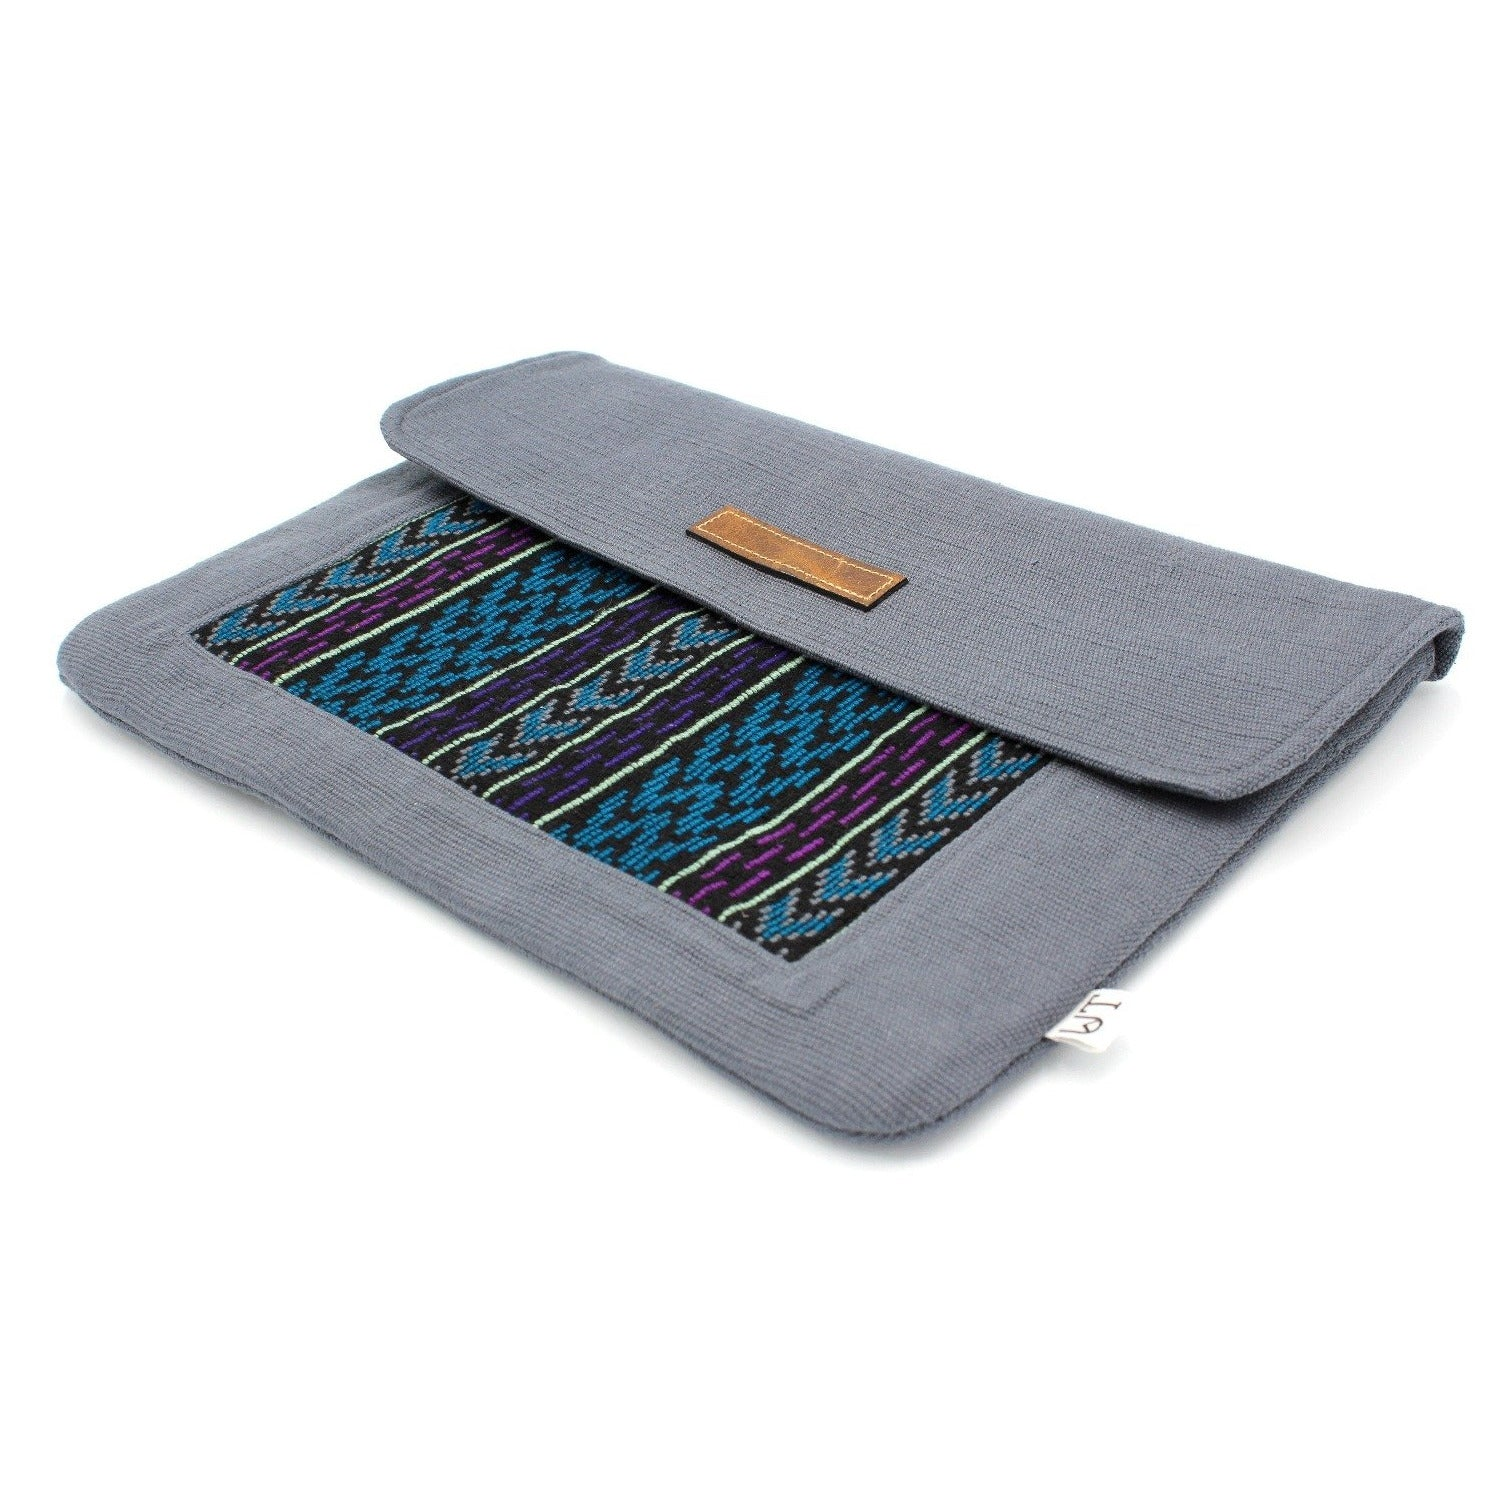 uq k'iche laptop case